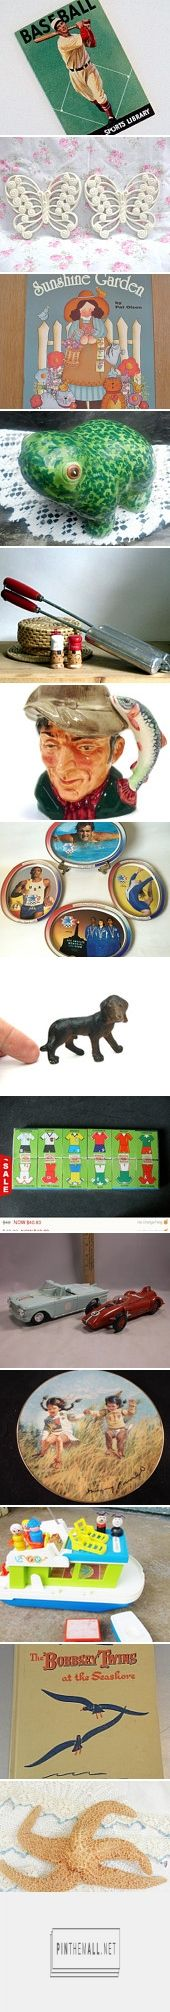 DAWG DAYS OF SUMMER by Terese USA Eastern Time Zone on Etsy - created via…